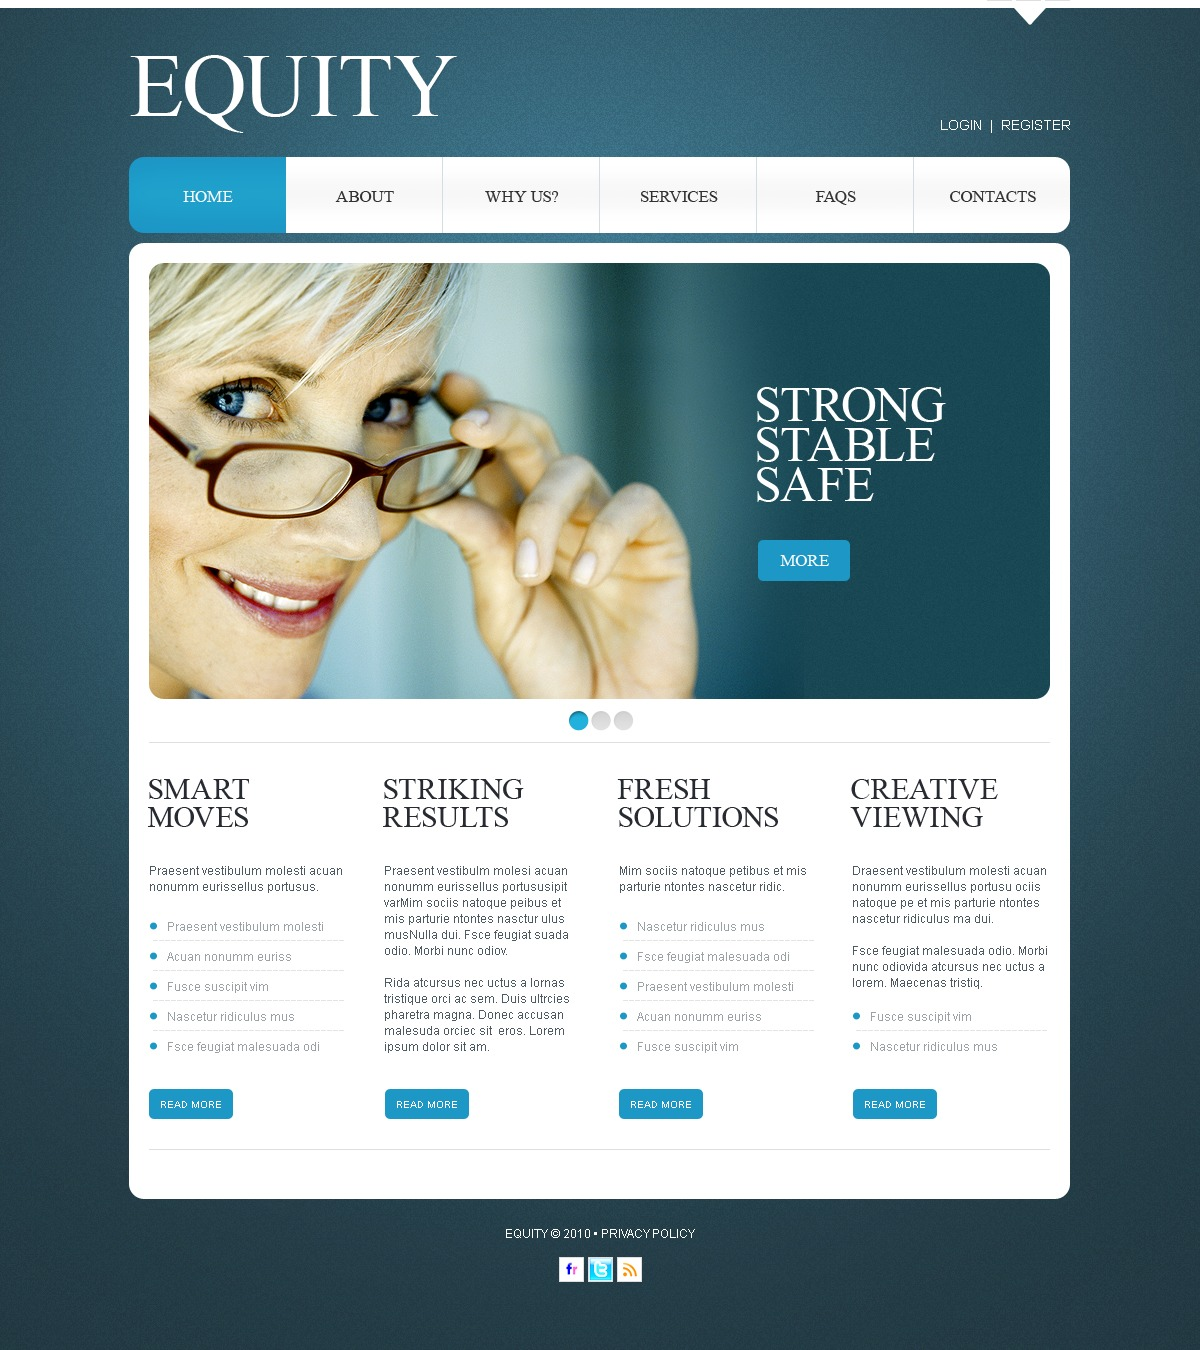 The Equity Business Company PSD Design 54175, one of the best PSD templates of its kind (business, wide, jquery), also known as equity business company PSD template, corporate solutions PSD template, innovations PSD template, contacts PSD template, service PSD template, support PSD template, information dealer PSD template, stocks PSD template, team PSD template, success PSD template, money PSD template, marketing PSD template, director PSD template, manager PSD template, analytics PSD template, planning PSD template, limited PSD template, office PSD template, sales and related with equity business company, corporate solutions, innovations, contacts, service, support, information dealer, stocks, team, success, money, marketing, director, manager, analytics, planning, limited, office, sales, etc.